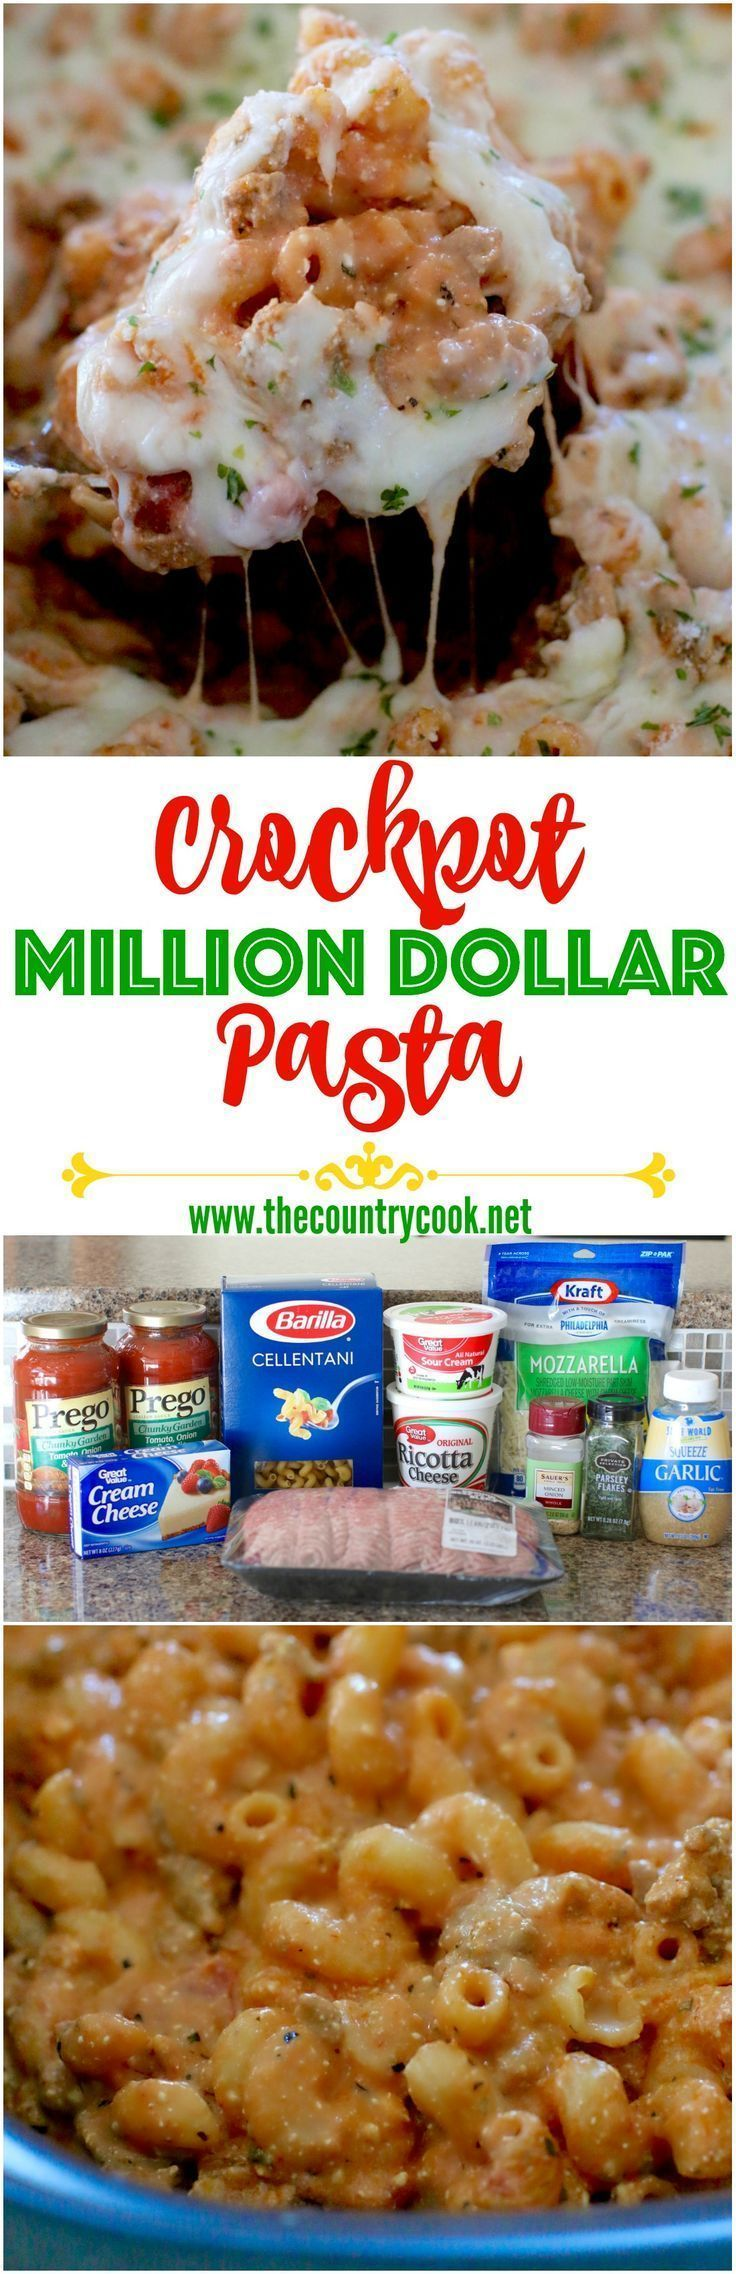 Crockpot Million Dollar Pasta recipe from The Country Cook. Creamy, flavorful pasta topped with hooey, gooey cheese! So easy too! We love to make a big batch of this and save leftovers for lunch & dinner during the week!